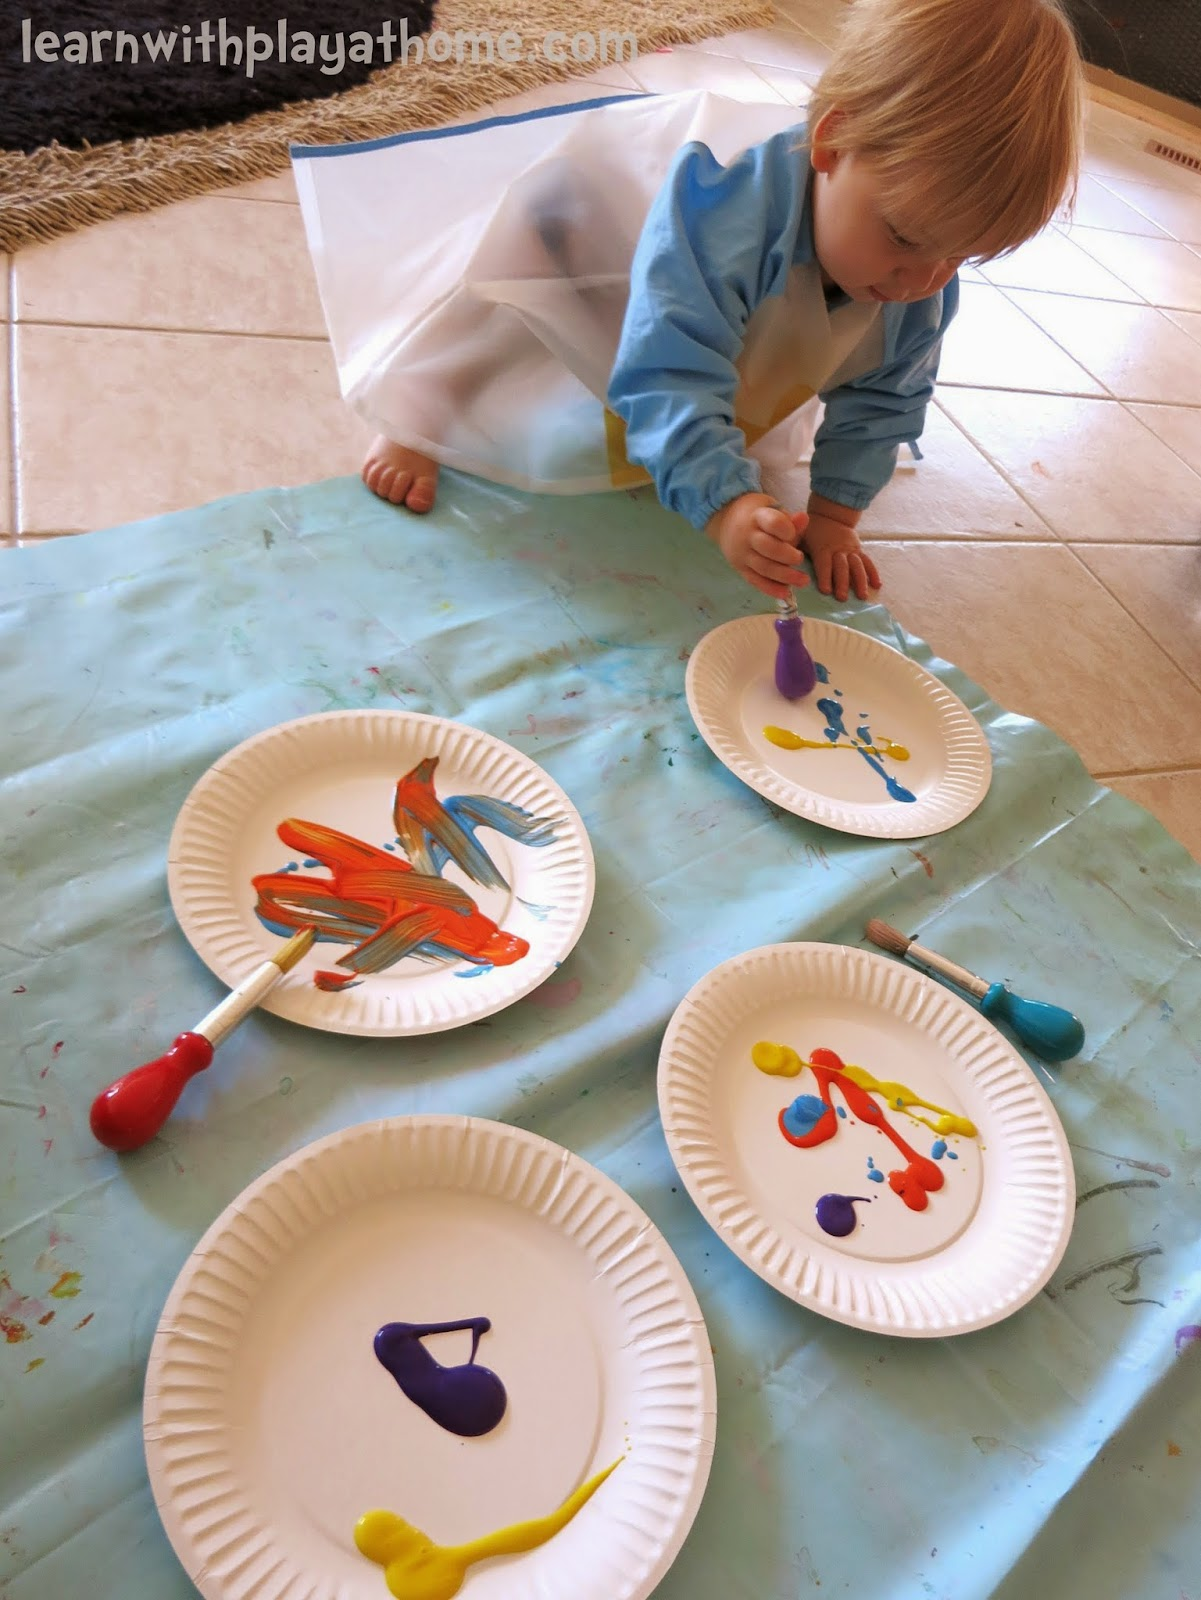 Jul 29 2013 & Learn with Play at Home: Baby and Toddler Play: Paper Plate Painting